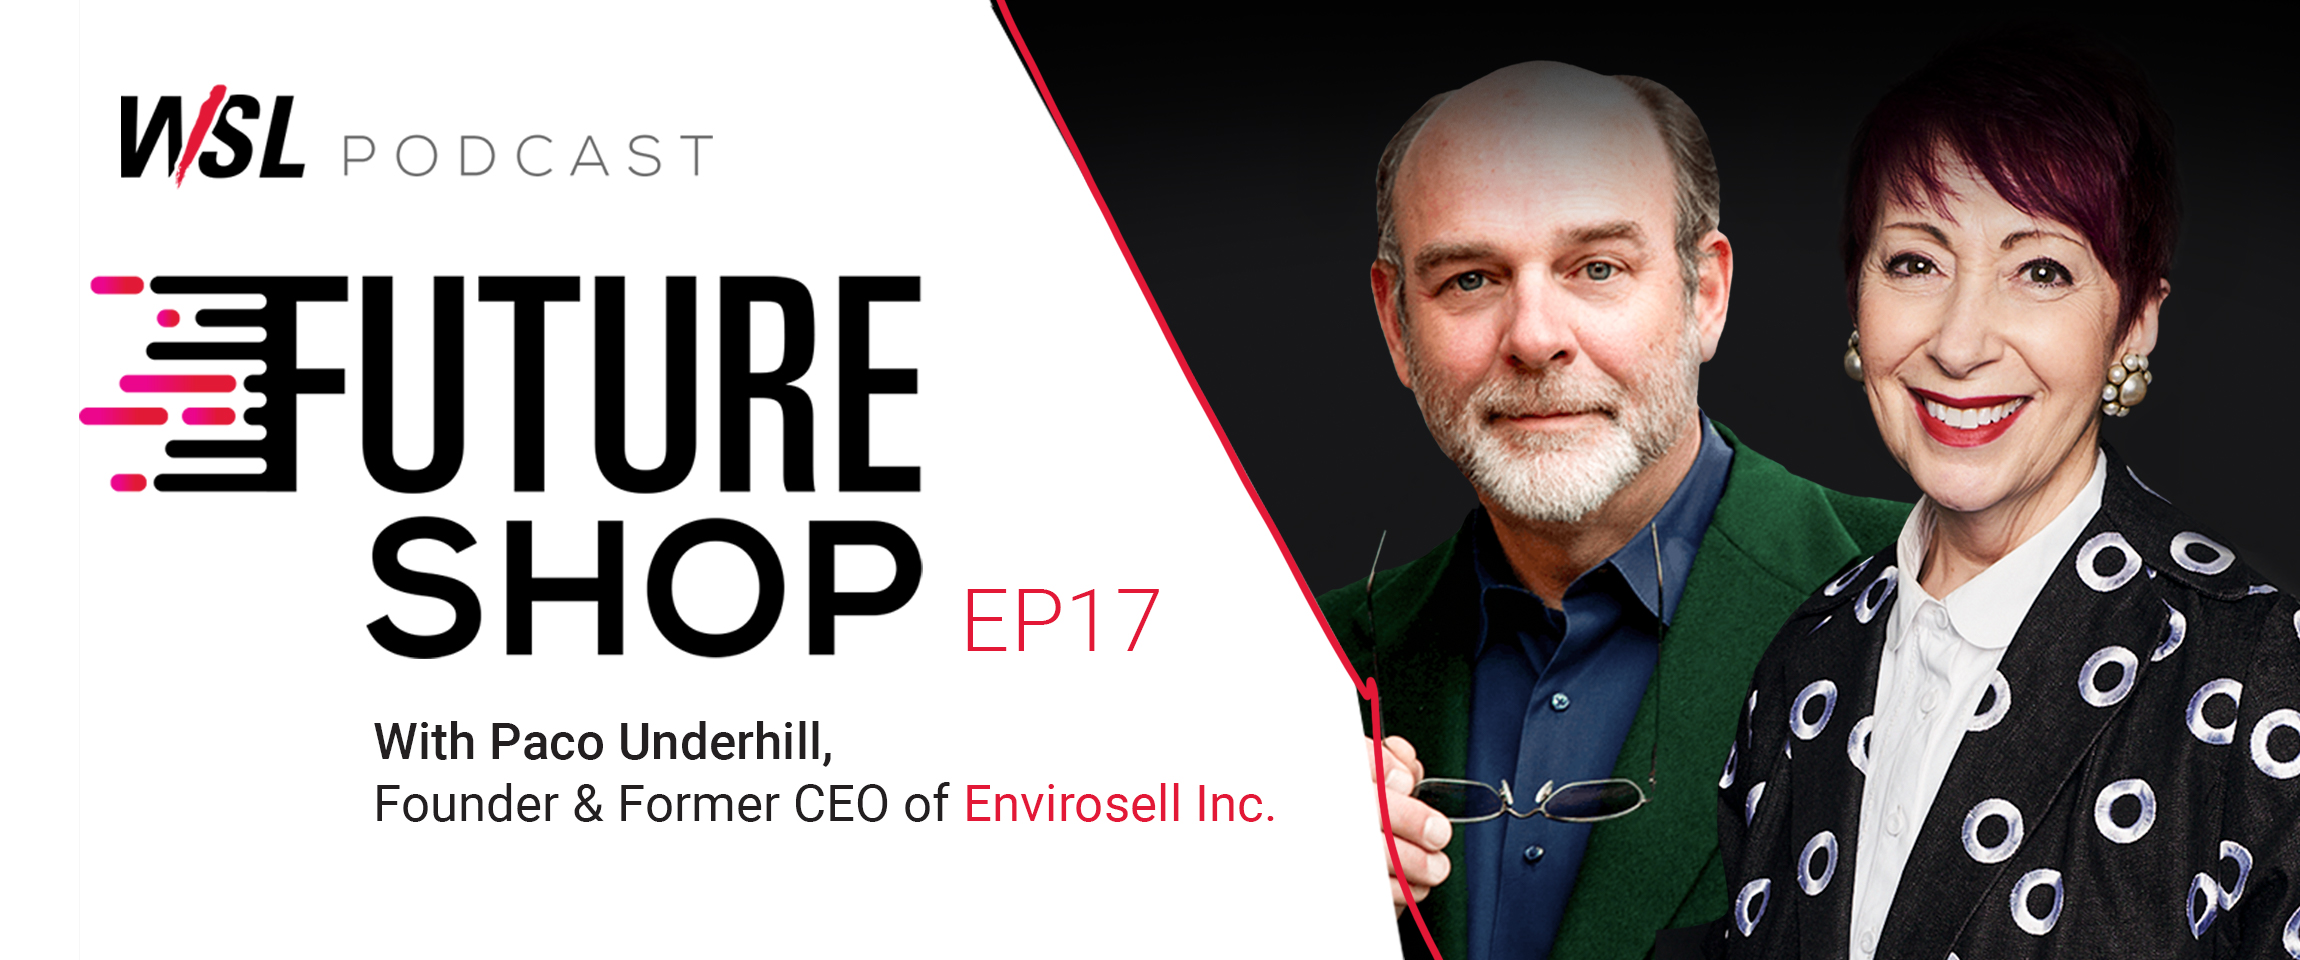 Retail Keep Up! Hurry Up! | Future Shop Podcast EP17